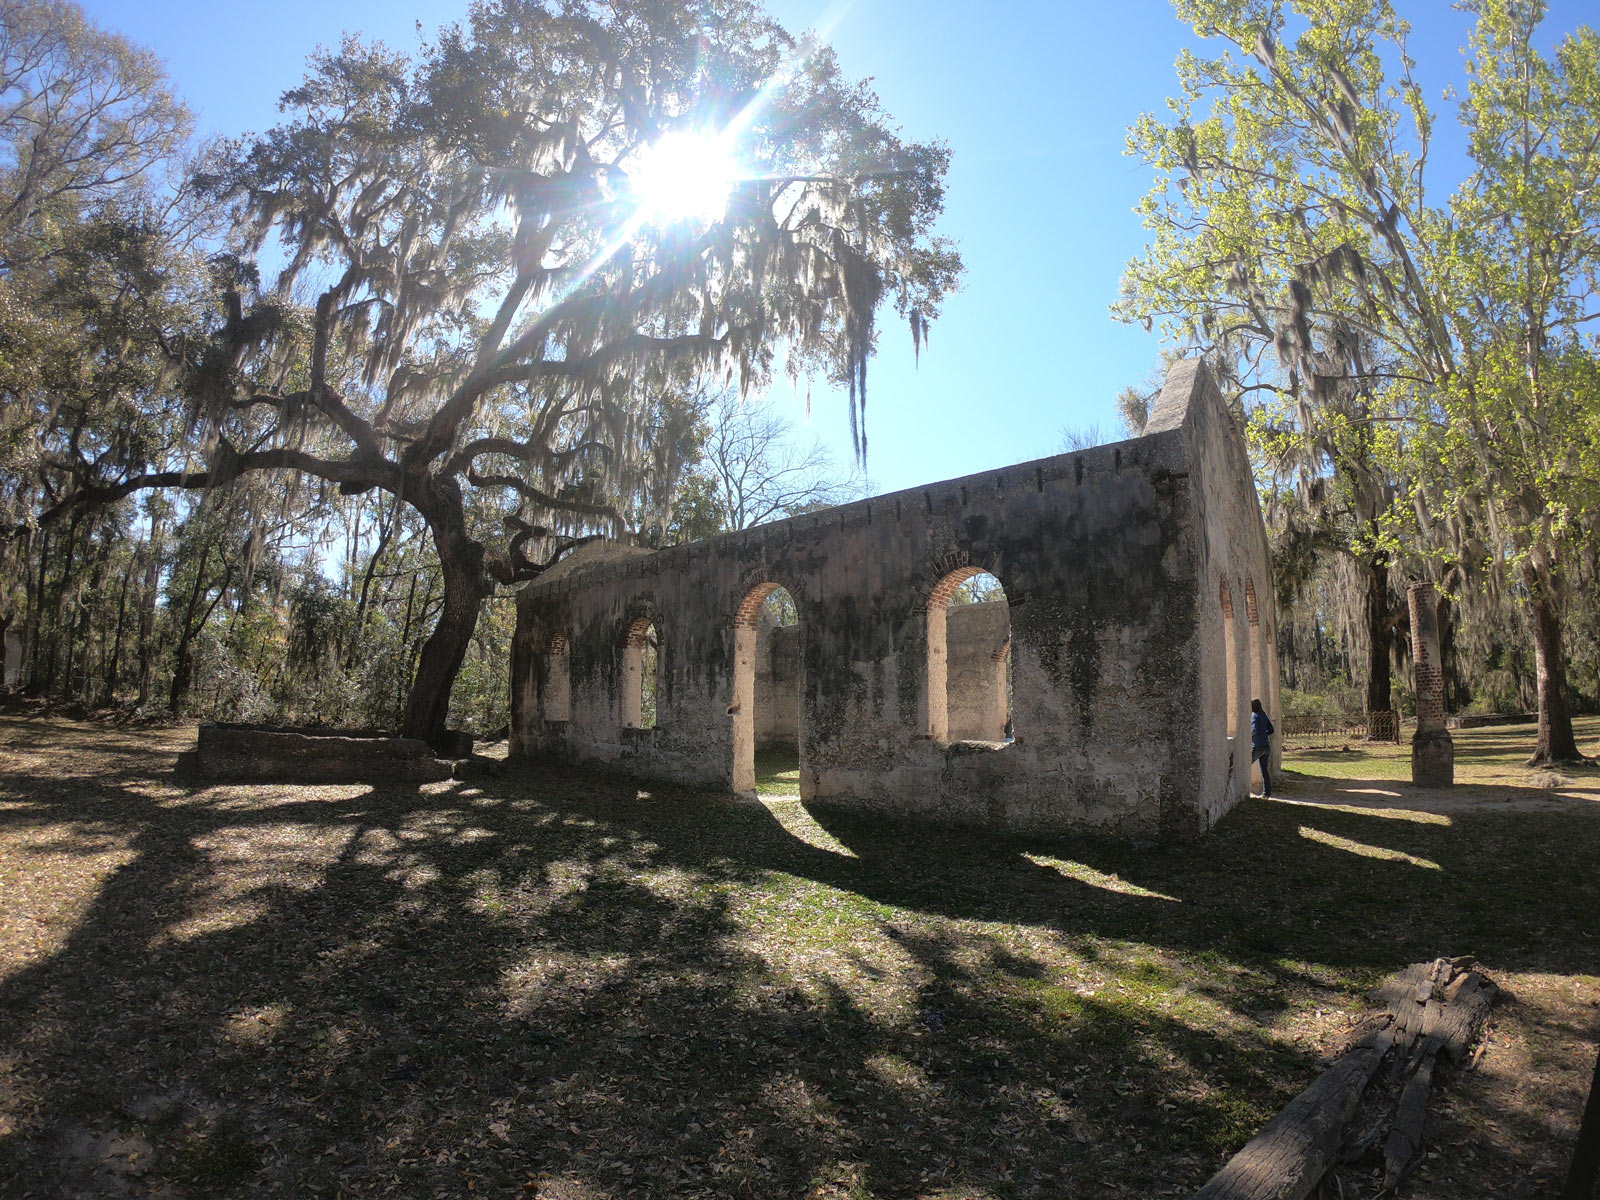 Ruins under Spanish moss laden live oak tree called Saint Helena Chapel of Ease outside of Beaufort, SC